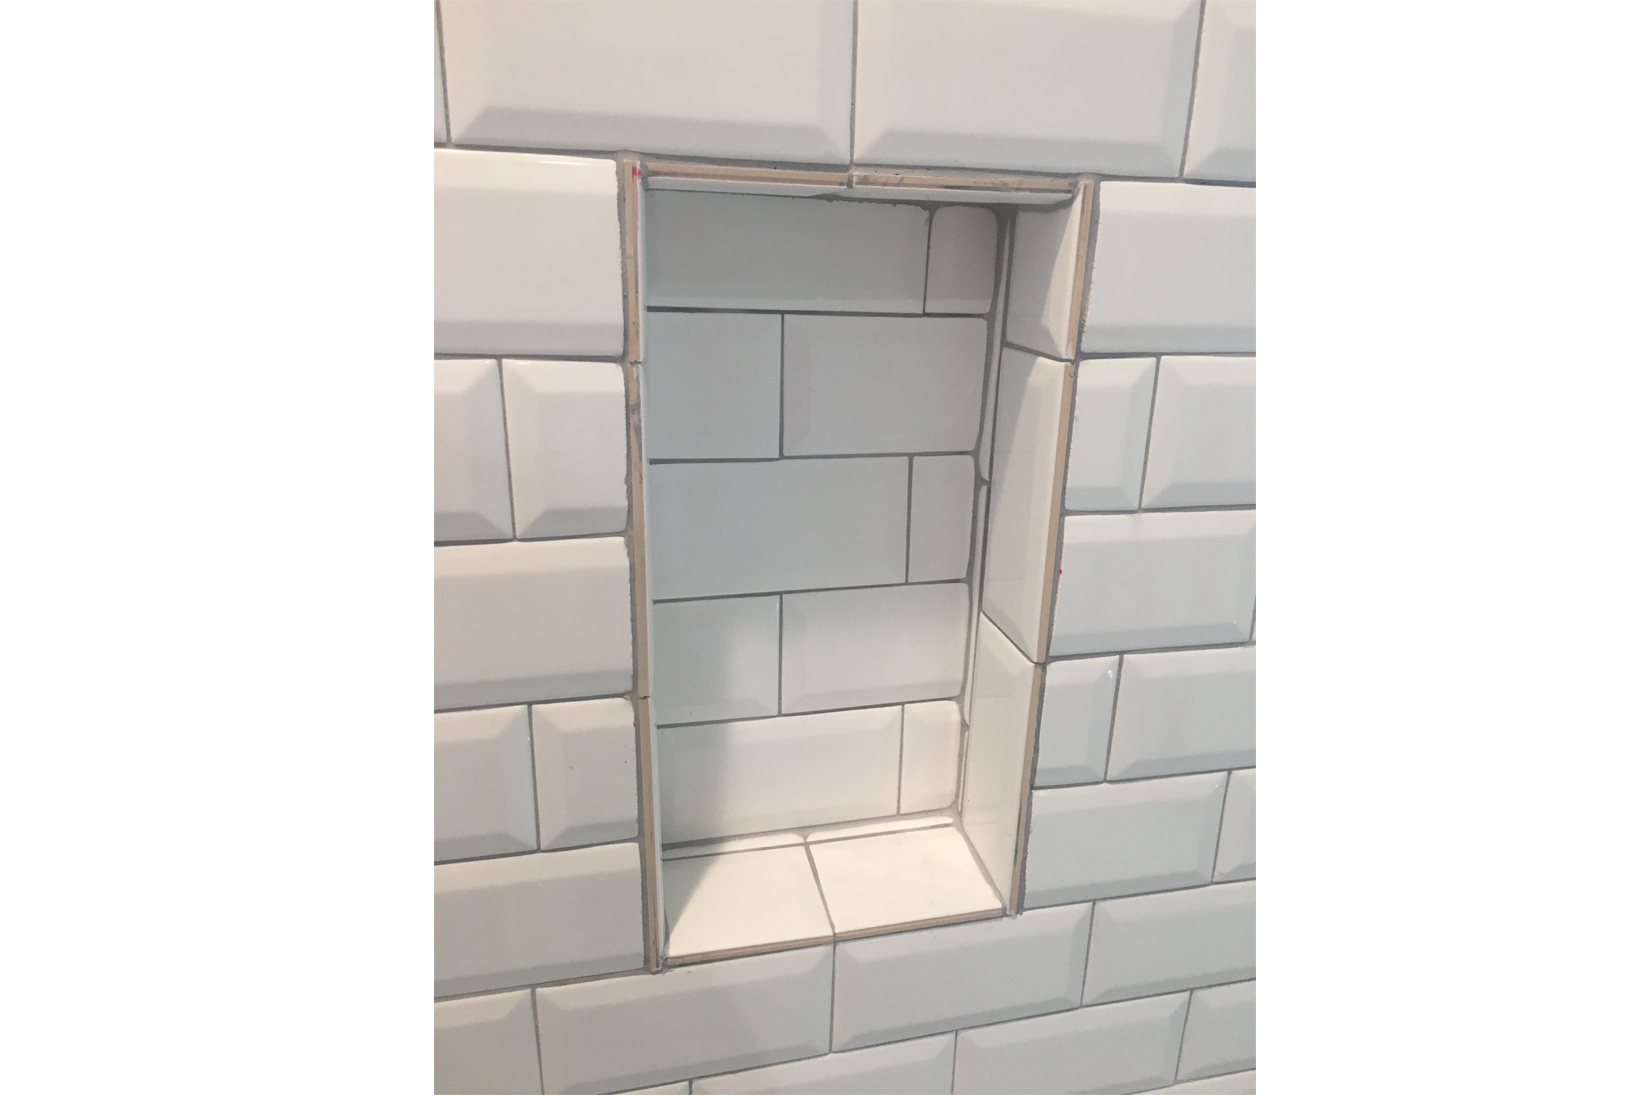 You probably didn't think about the raw edges of the tile when you were in the tile store trying to make a decision!